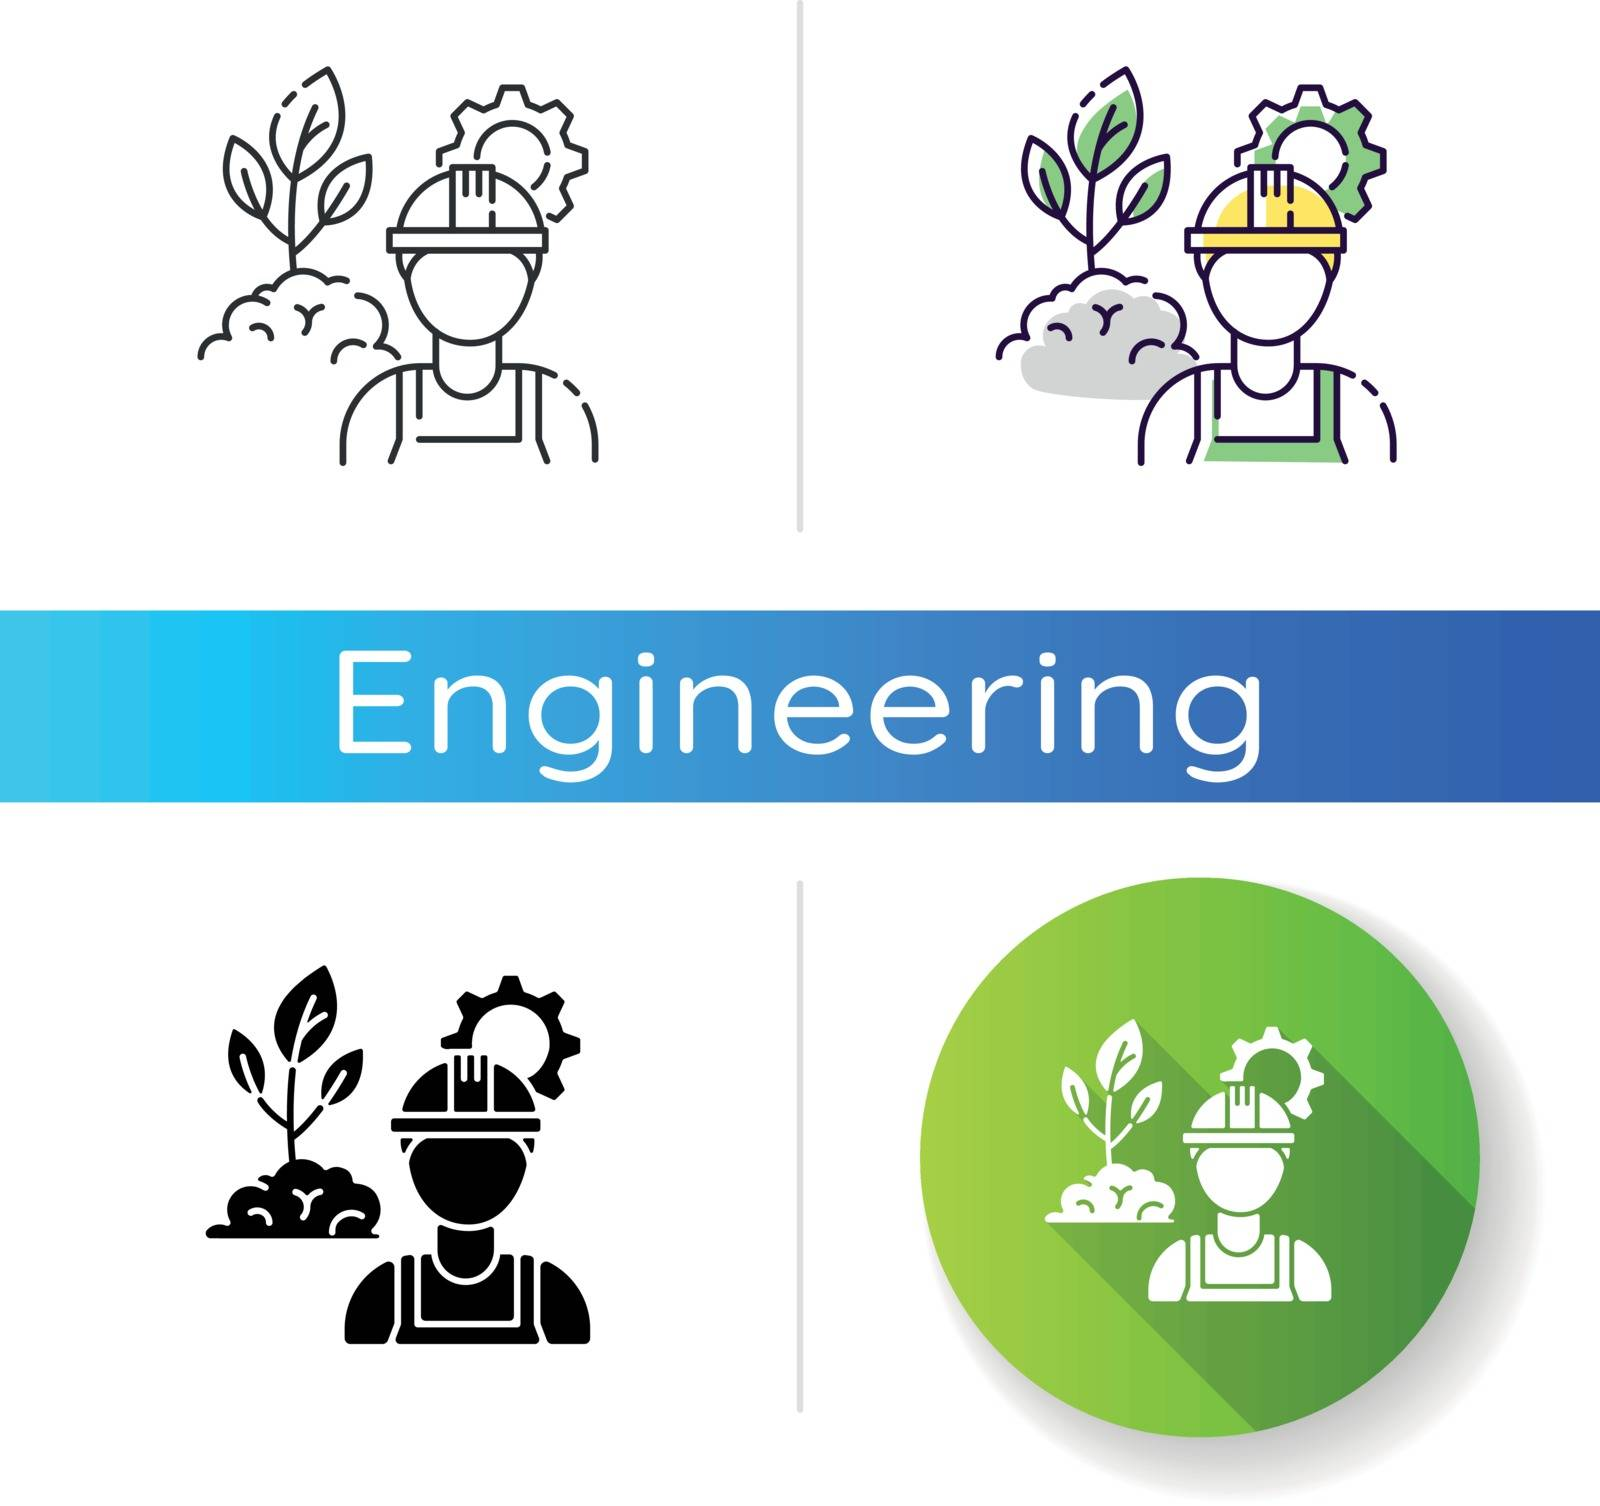 Environmental engineer icon. Safe labor to work in agriculture business. Professional worker for sustainable development. Linear black and RGB color styles. Isolated vector illustrations